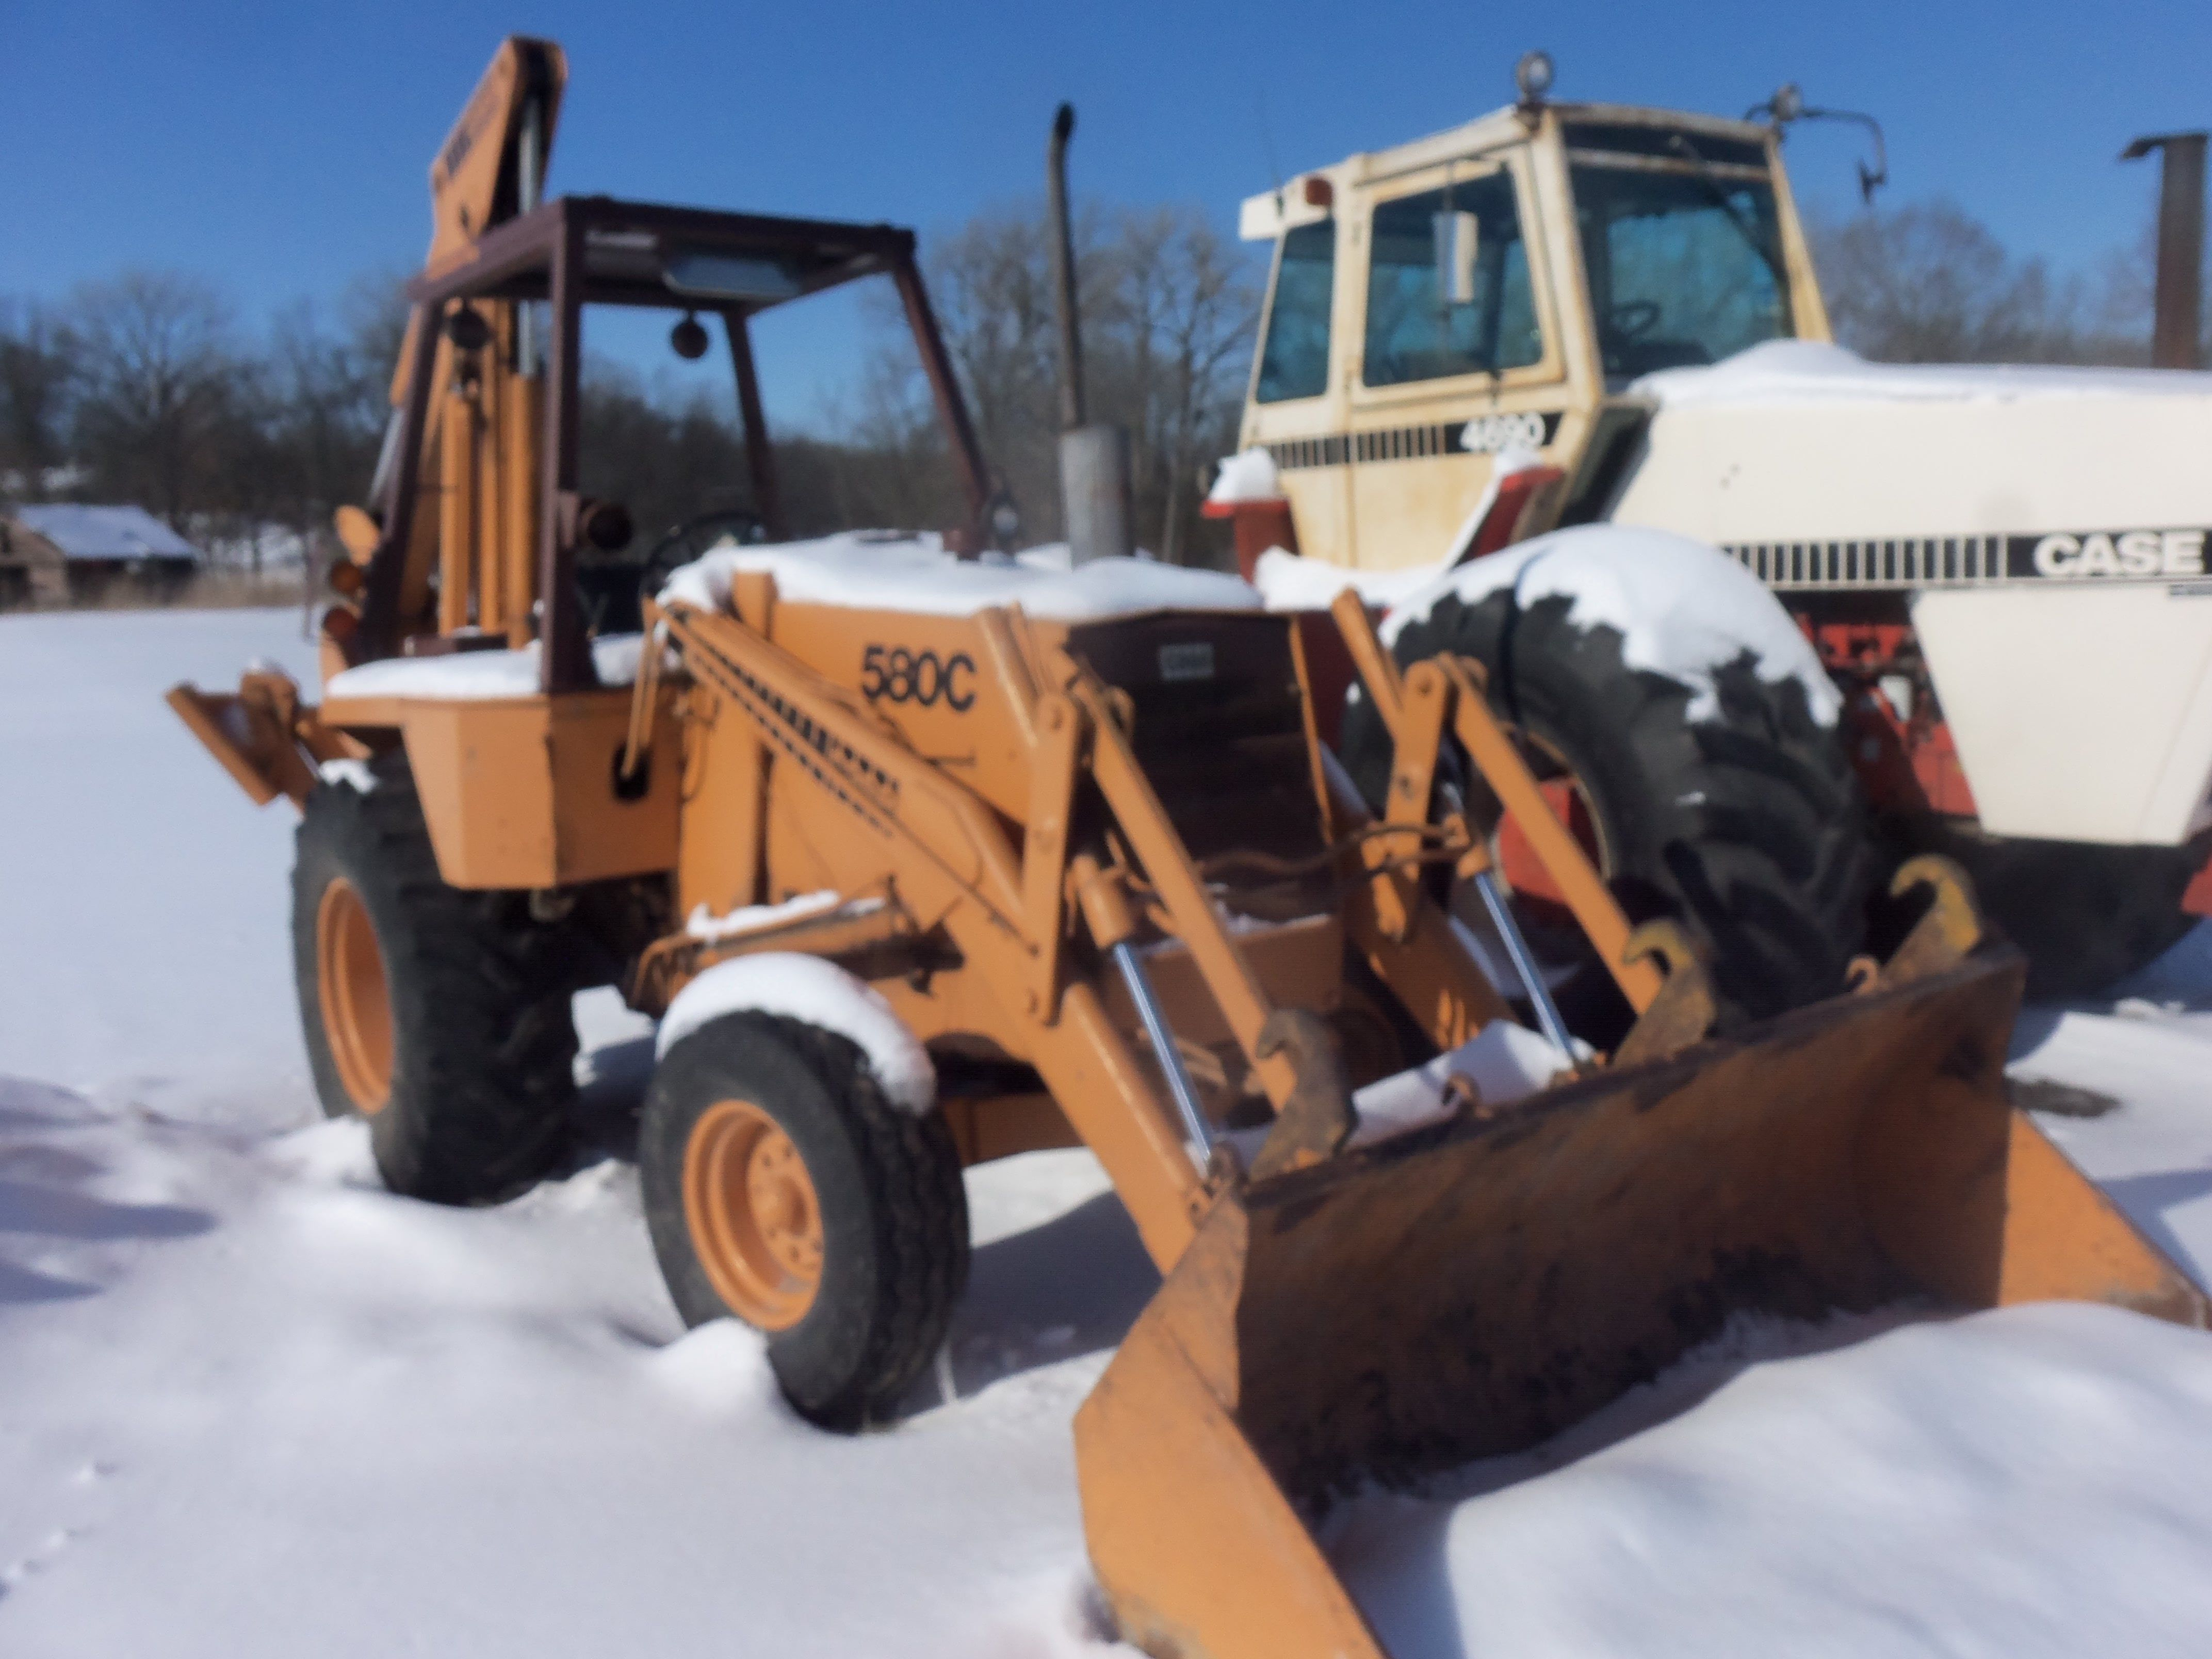 Case 580C tractor loader backhoe from late 1970s